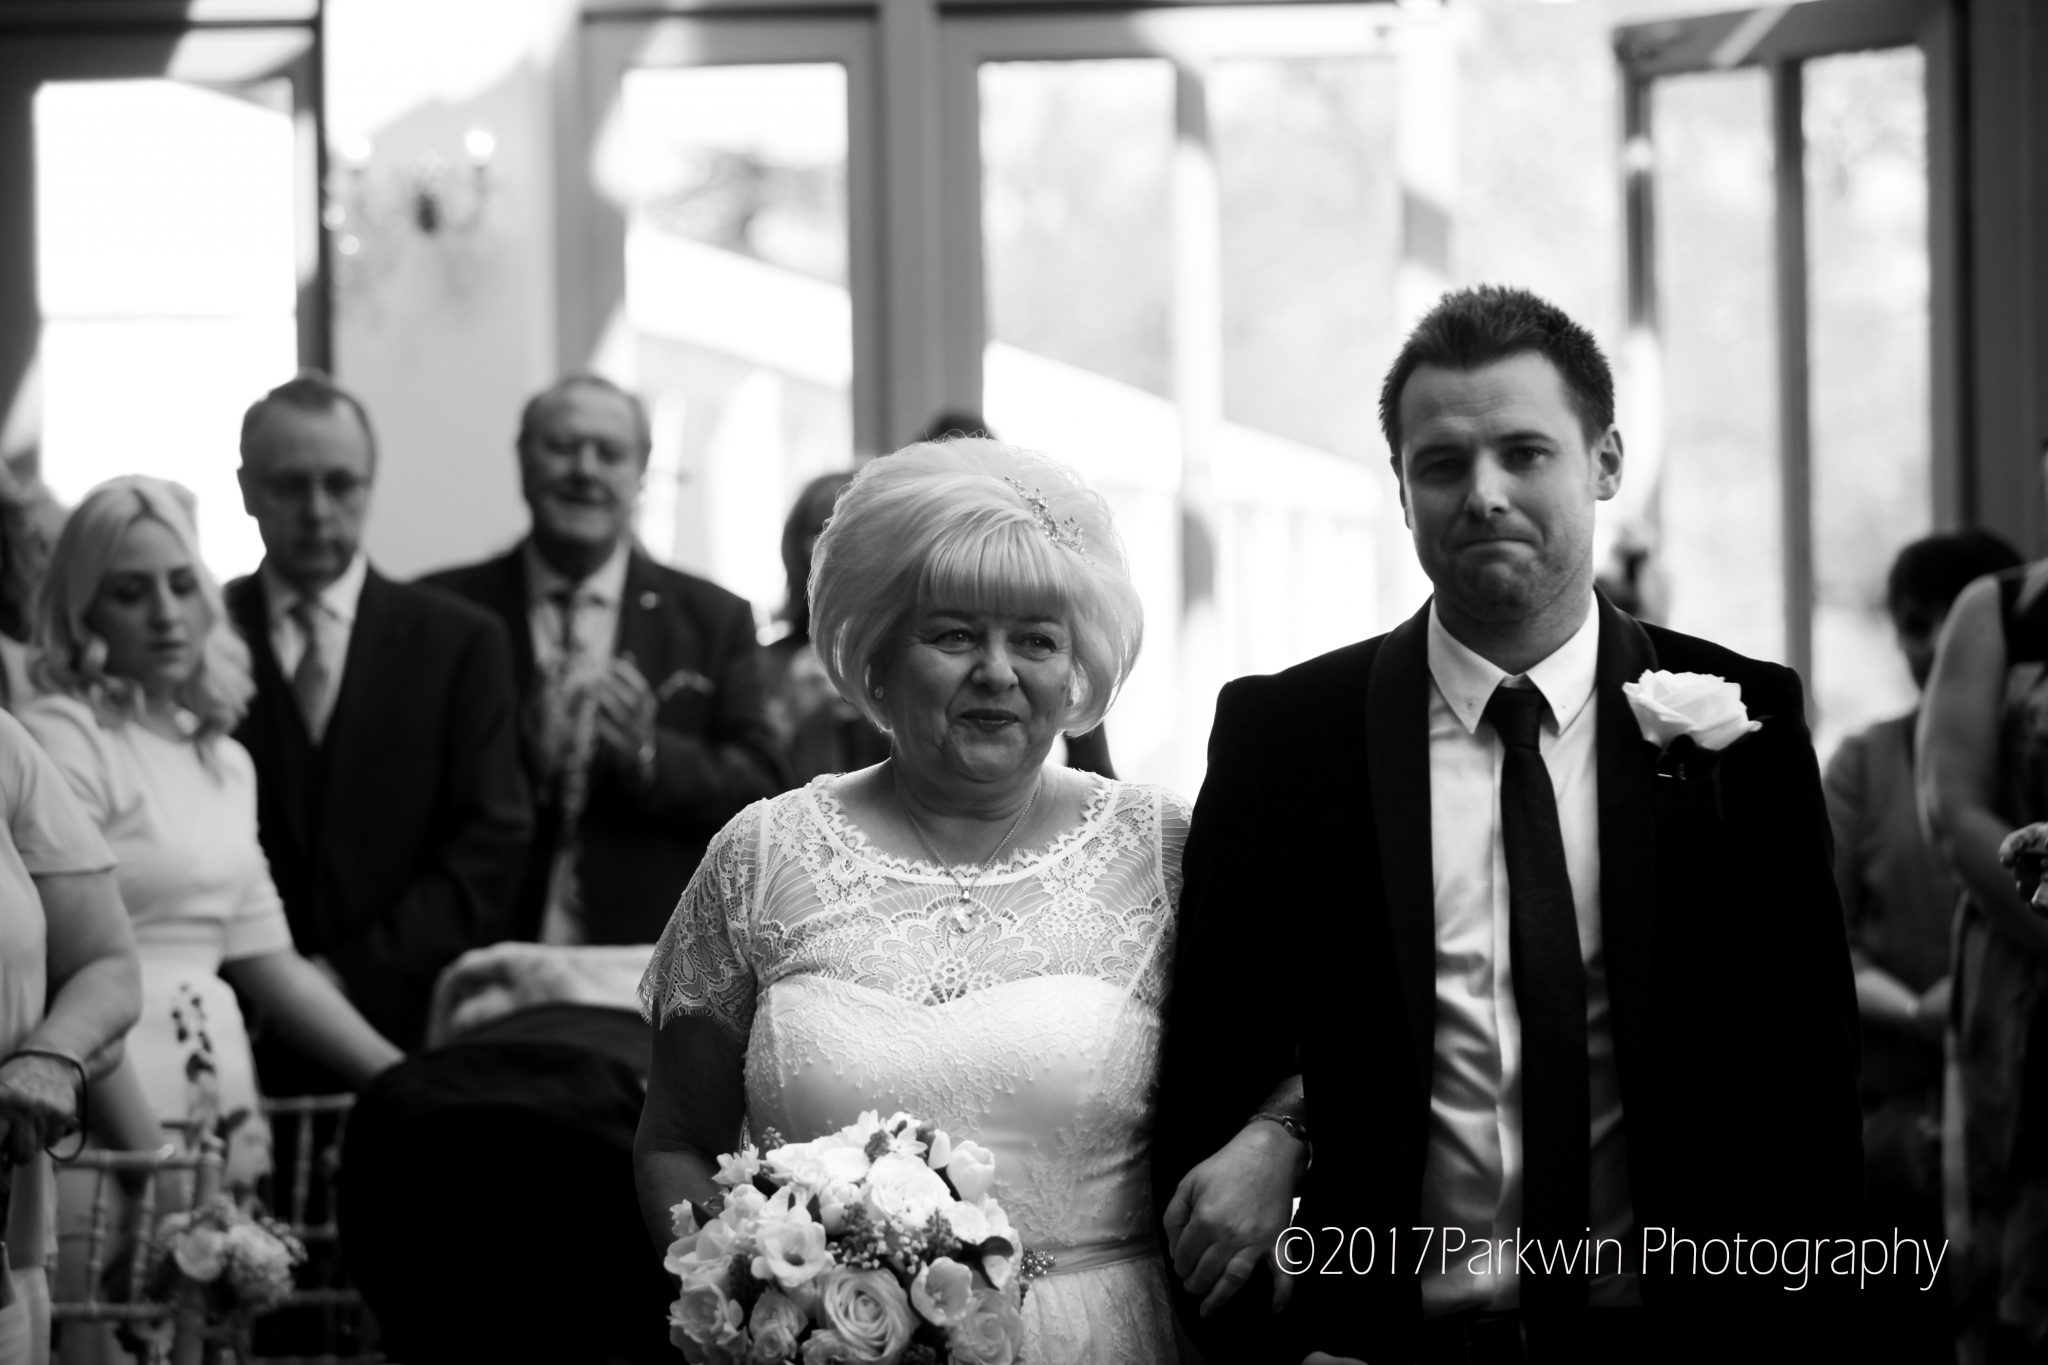 proud son with Mum at Wedding